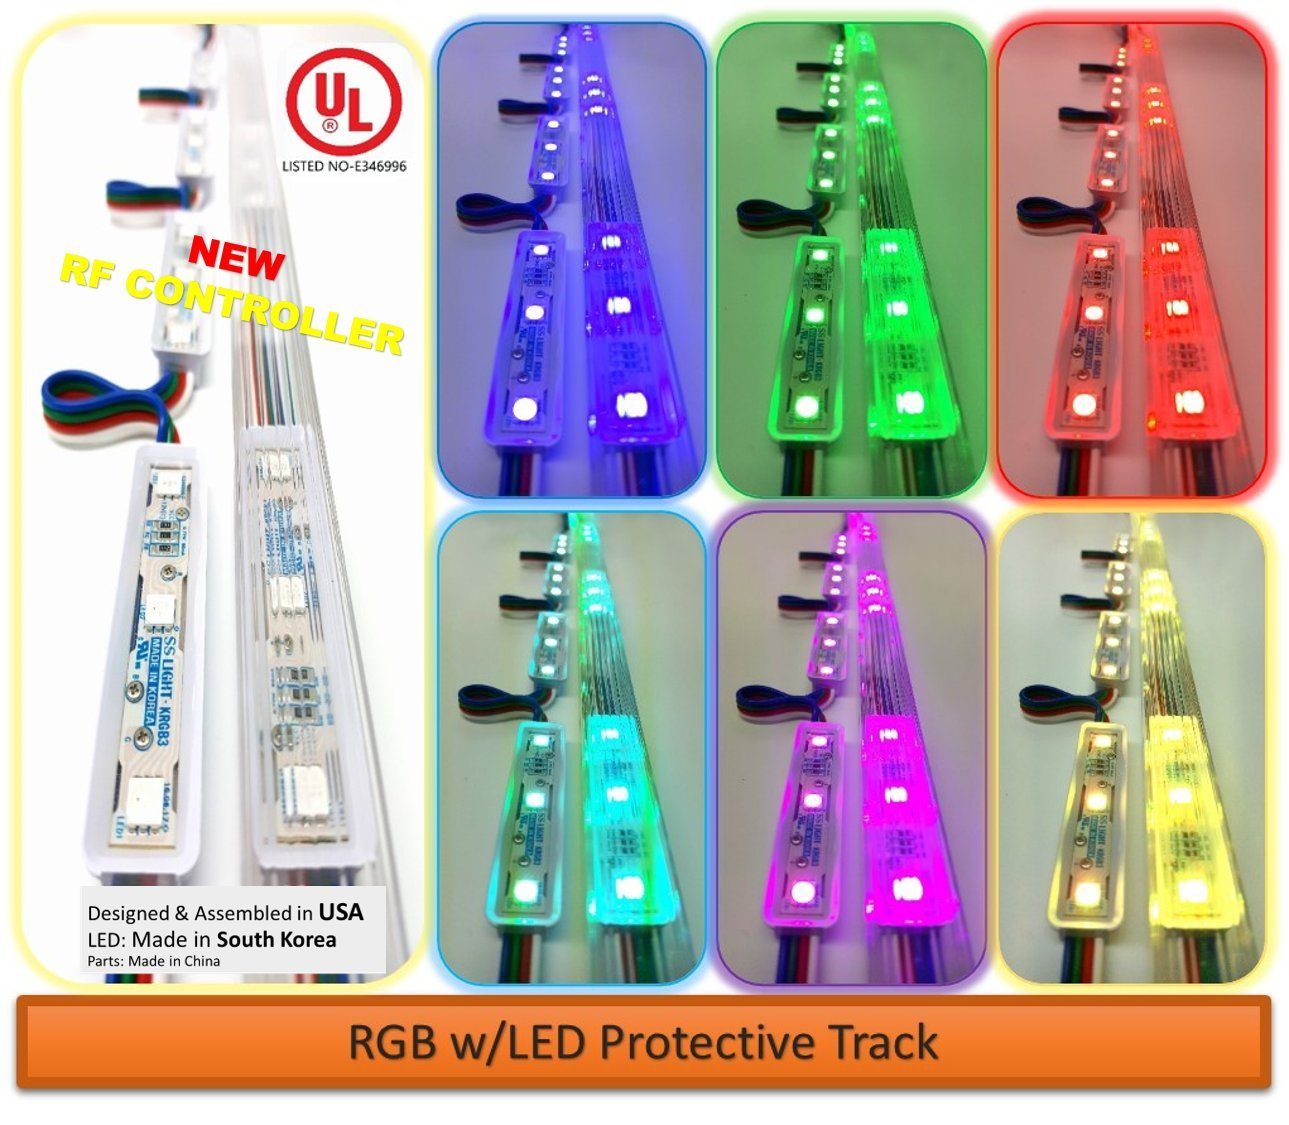 Storefront Window LED Lights Kit with Protective Tracks for Indoor & Outdoor Plug in Light (Multi-colored 30ft) by LUXDIYLED